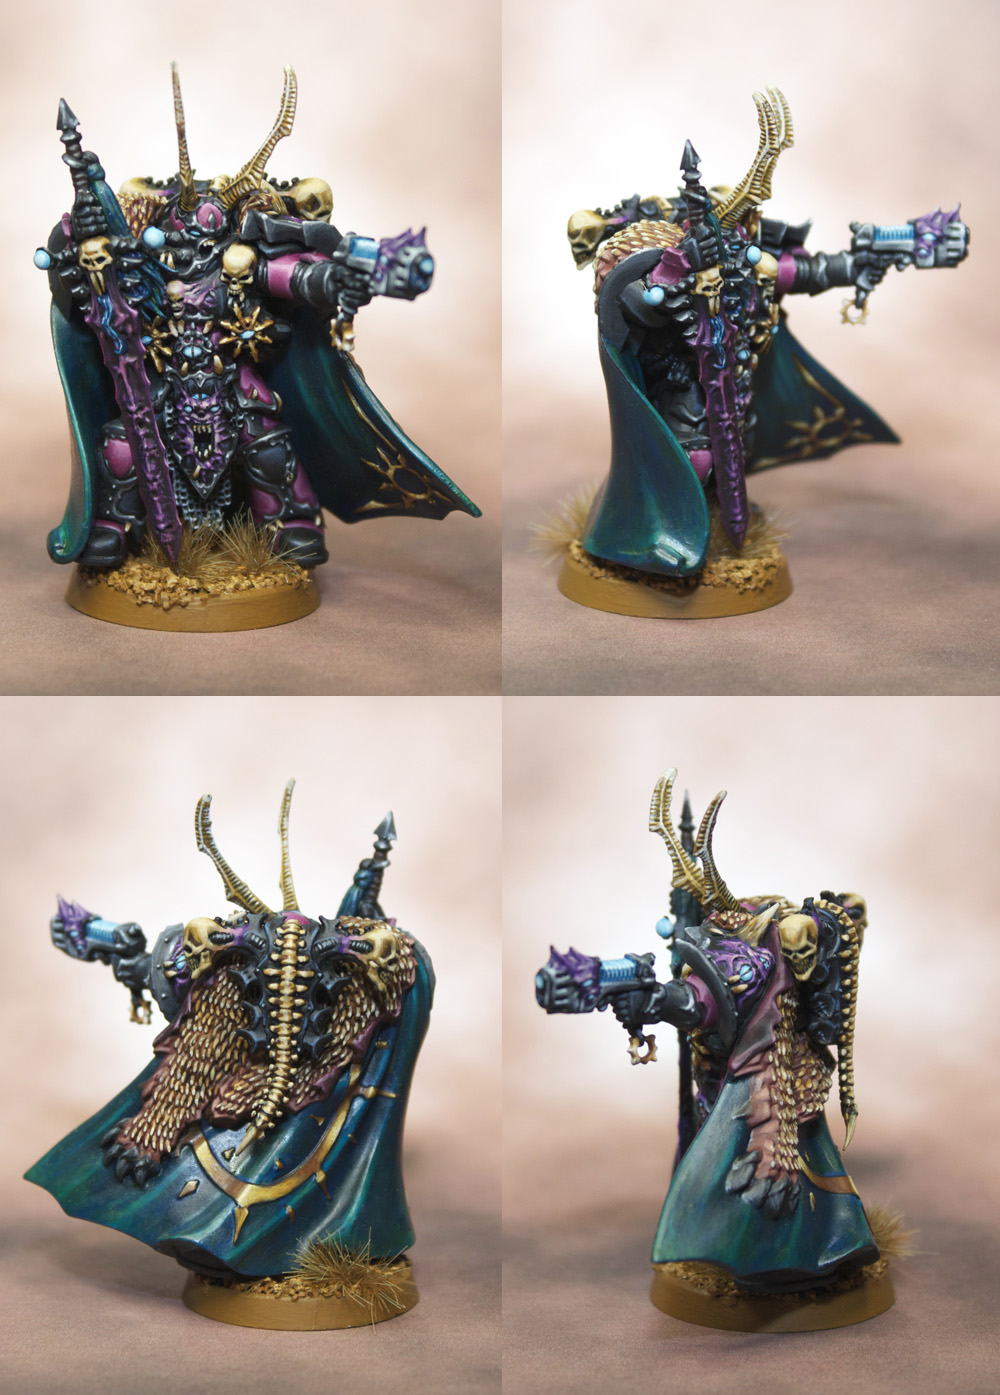 Slaanesh Chaos Lord